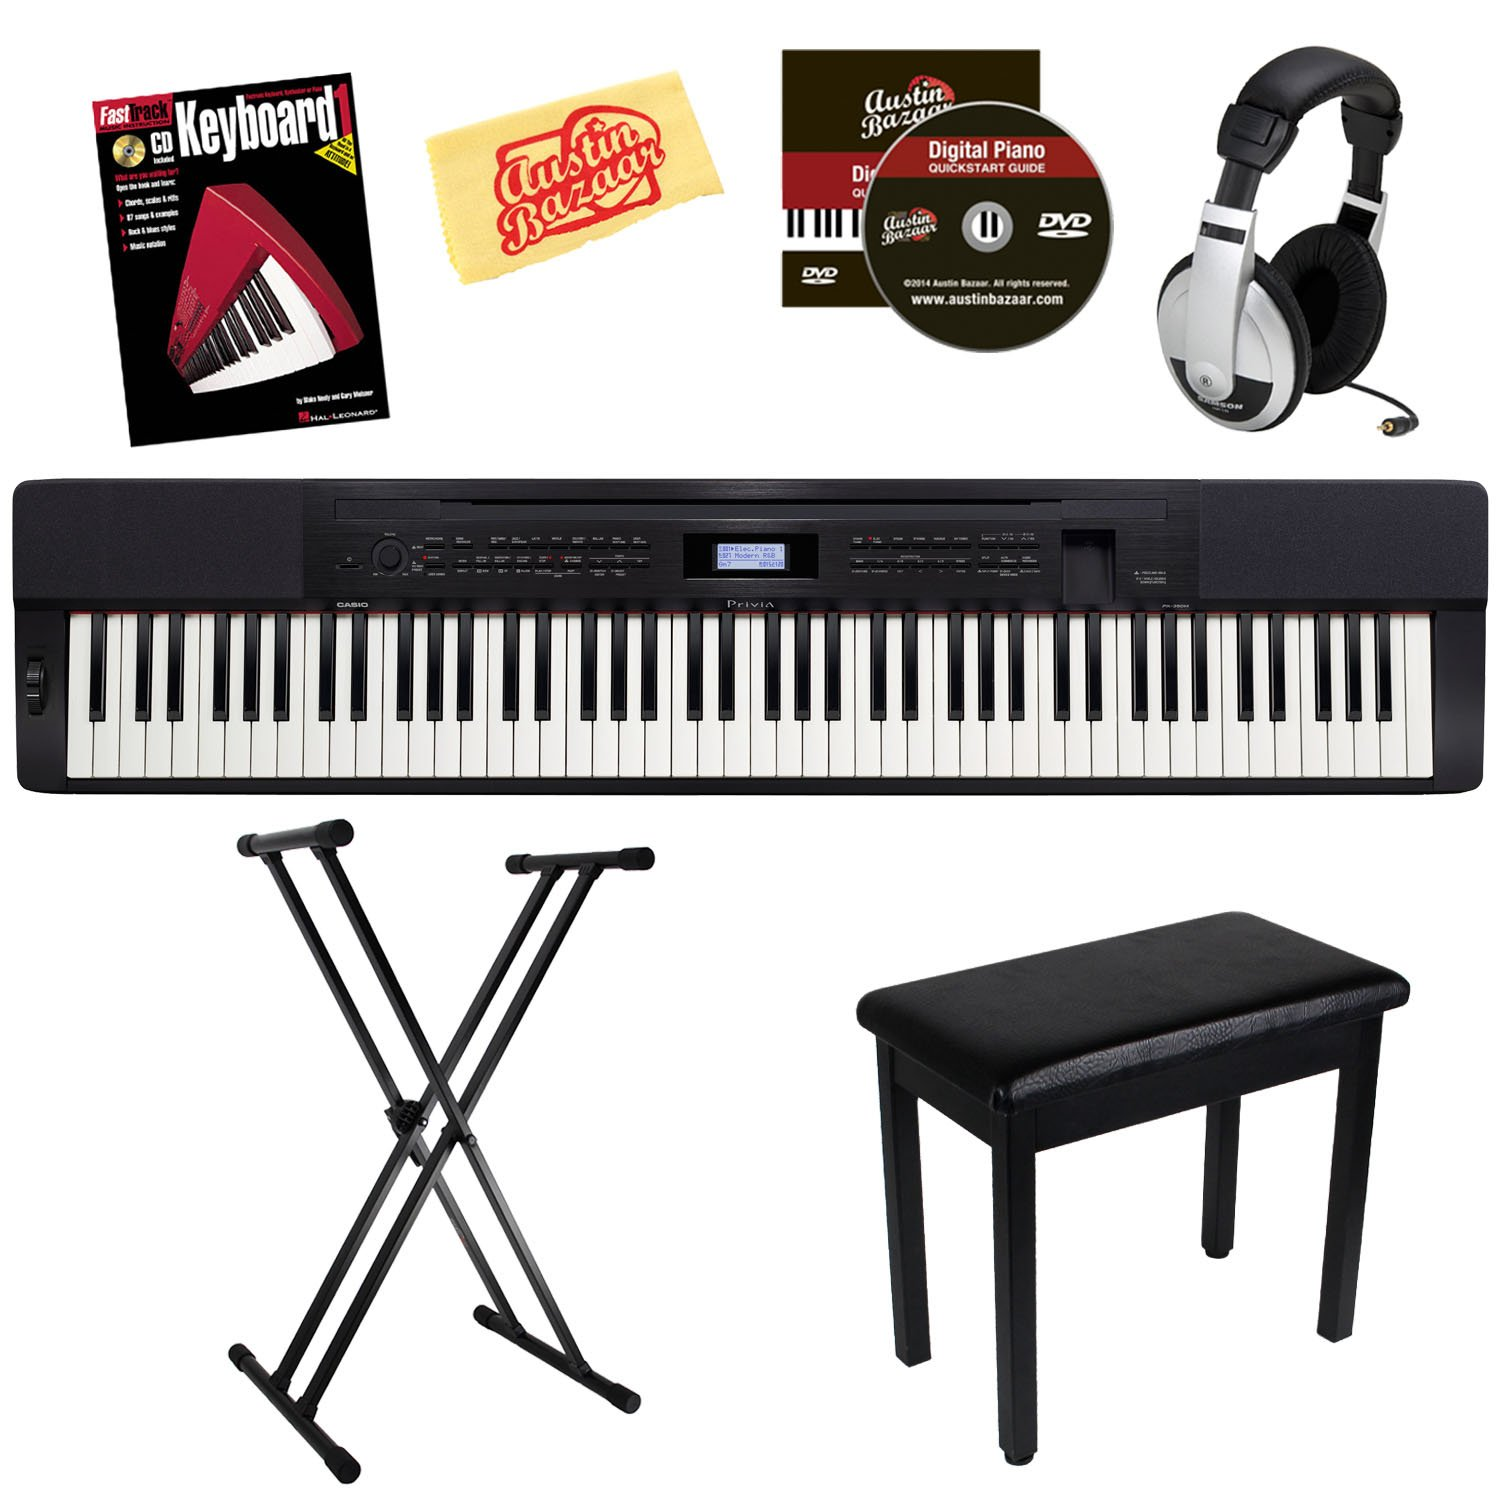 Casio Privia PX-350 88-Key Digital Piano Bundle with Bench, Stand, Headphones, and Instructional Book - Black by Casio (Image #1)